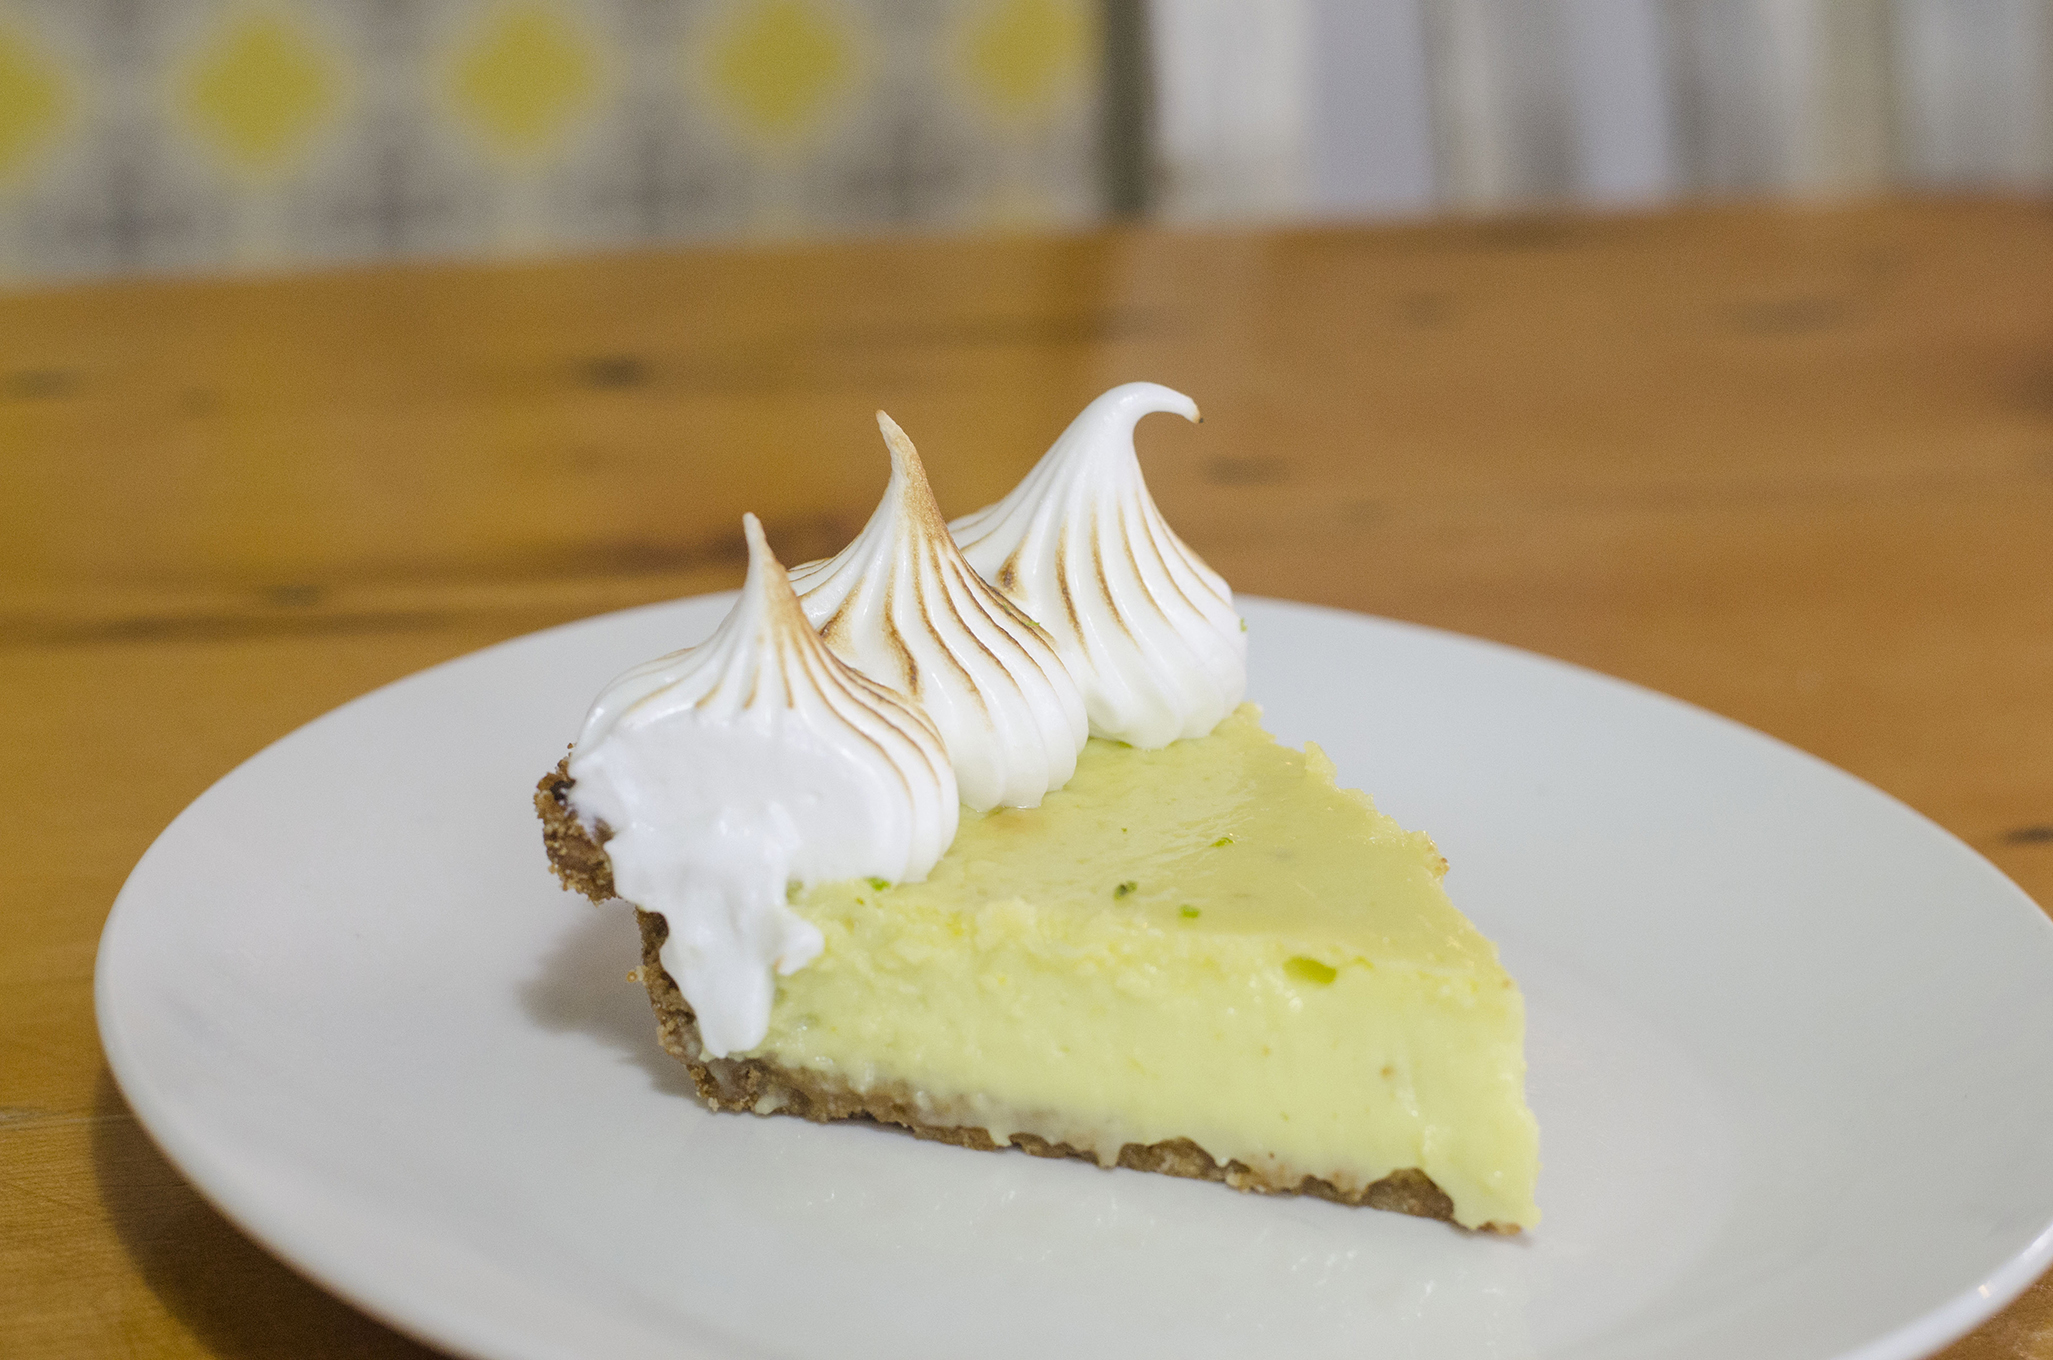 Key Lime Pie from Riverside Pie Cafe in Windsor, Ontario.